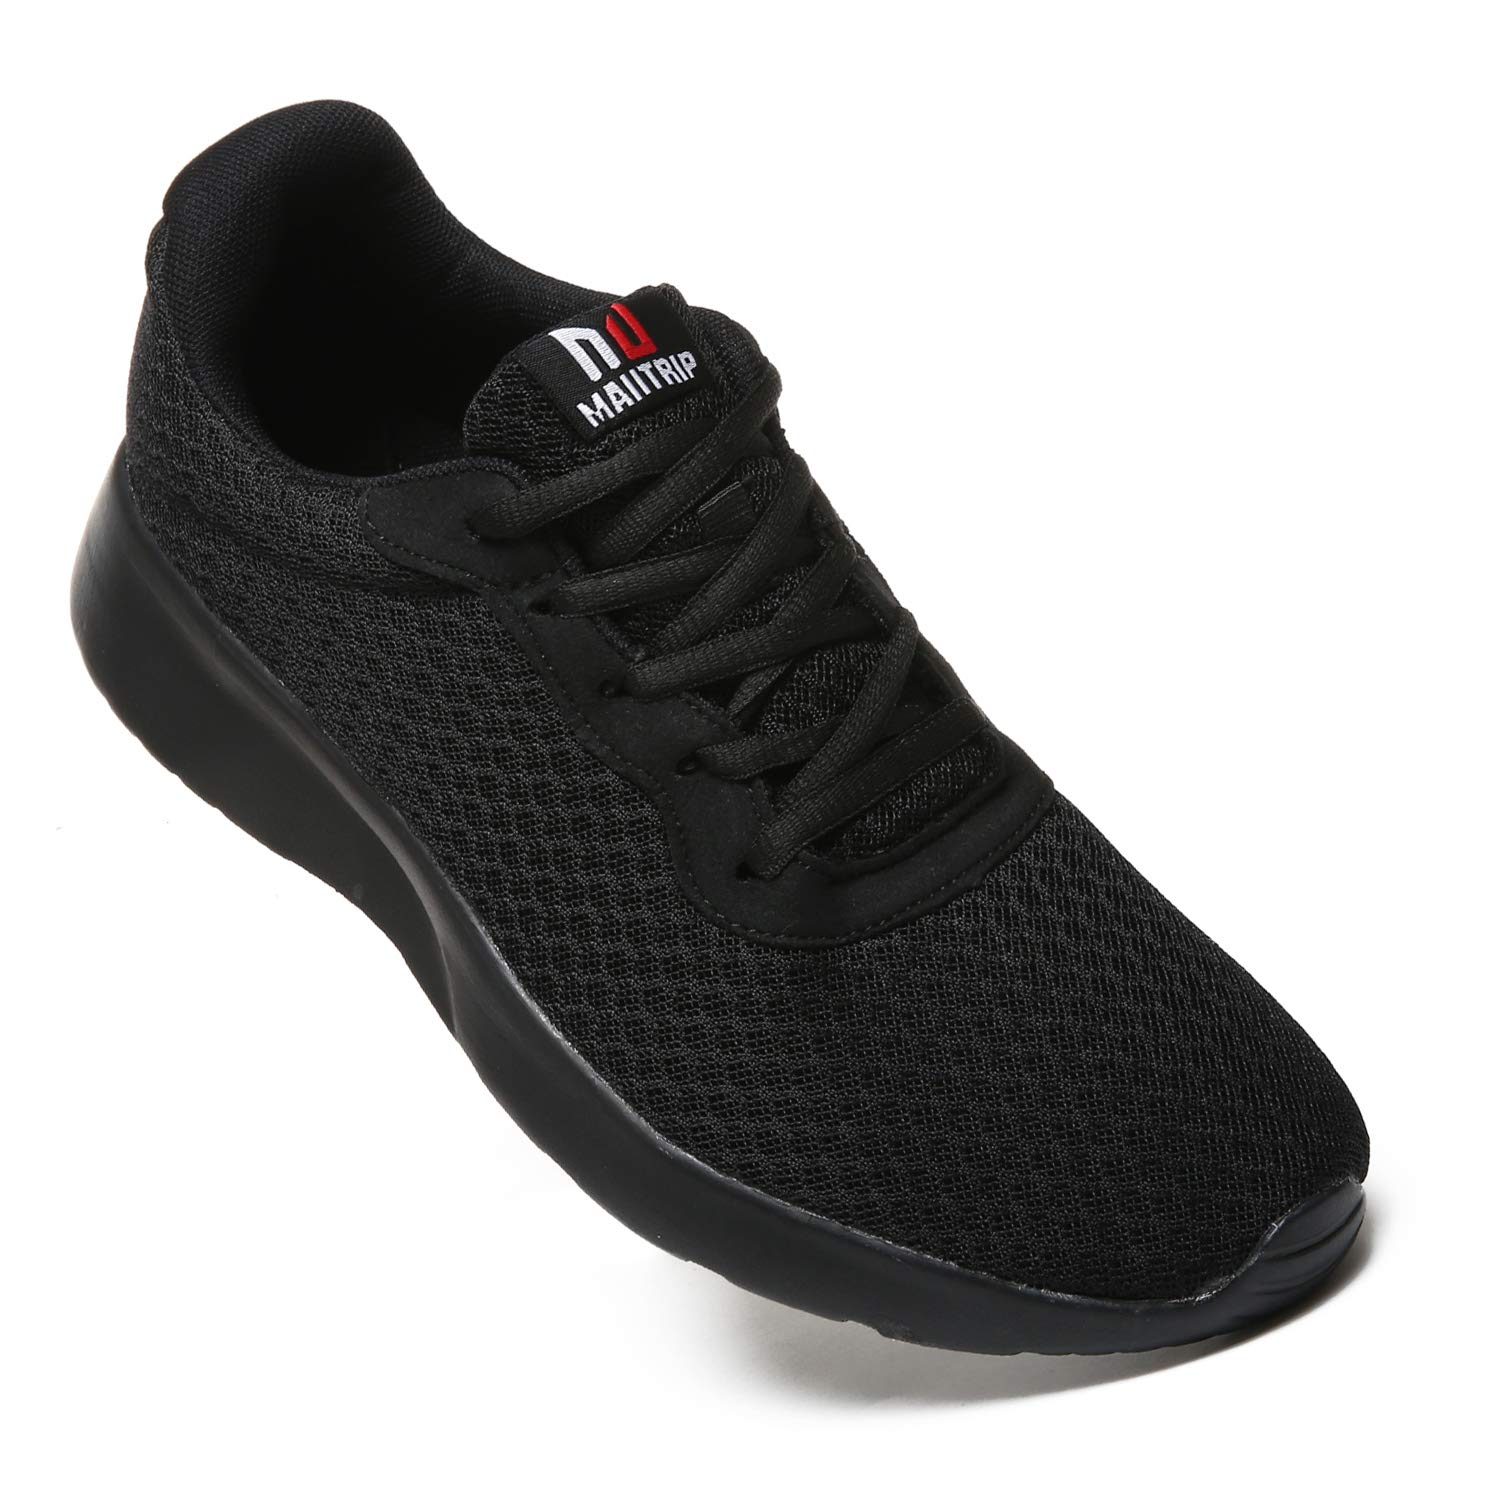 MAITRIP Mens Gym Shoes,Athletic Running Shoes,Lightweight Breathable Mesh Casual Tennis Sports Workout Walking Sneakers,All Black,Size 7